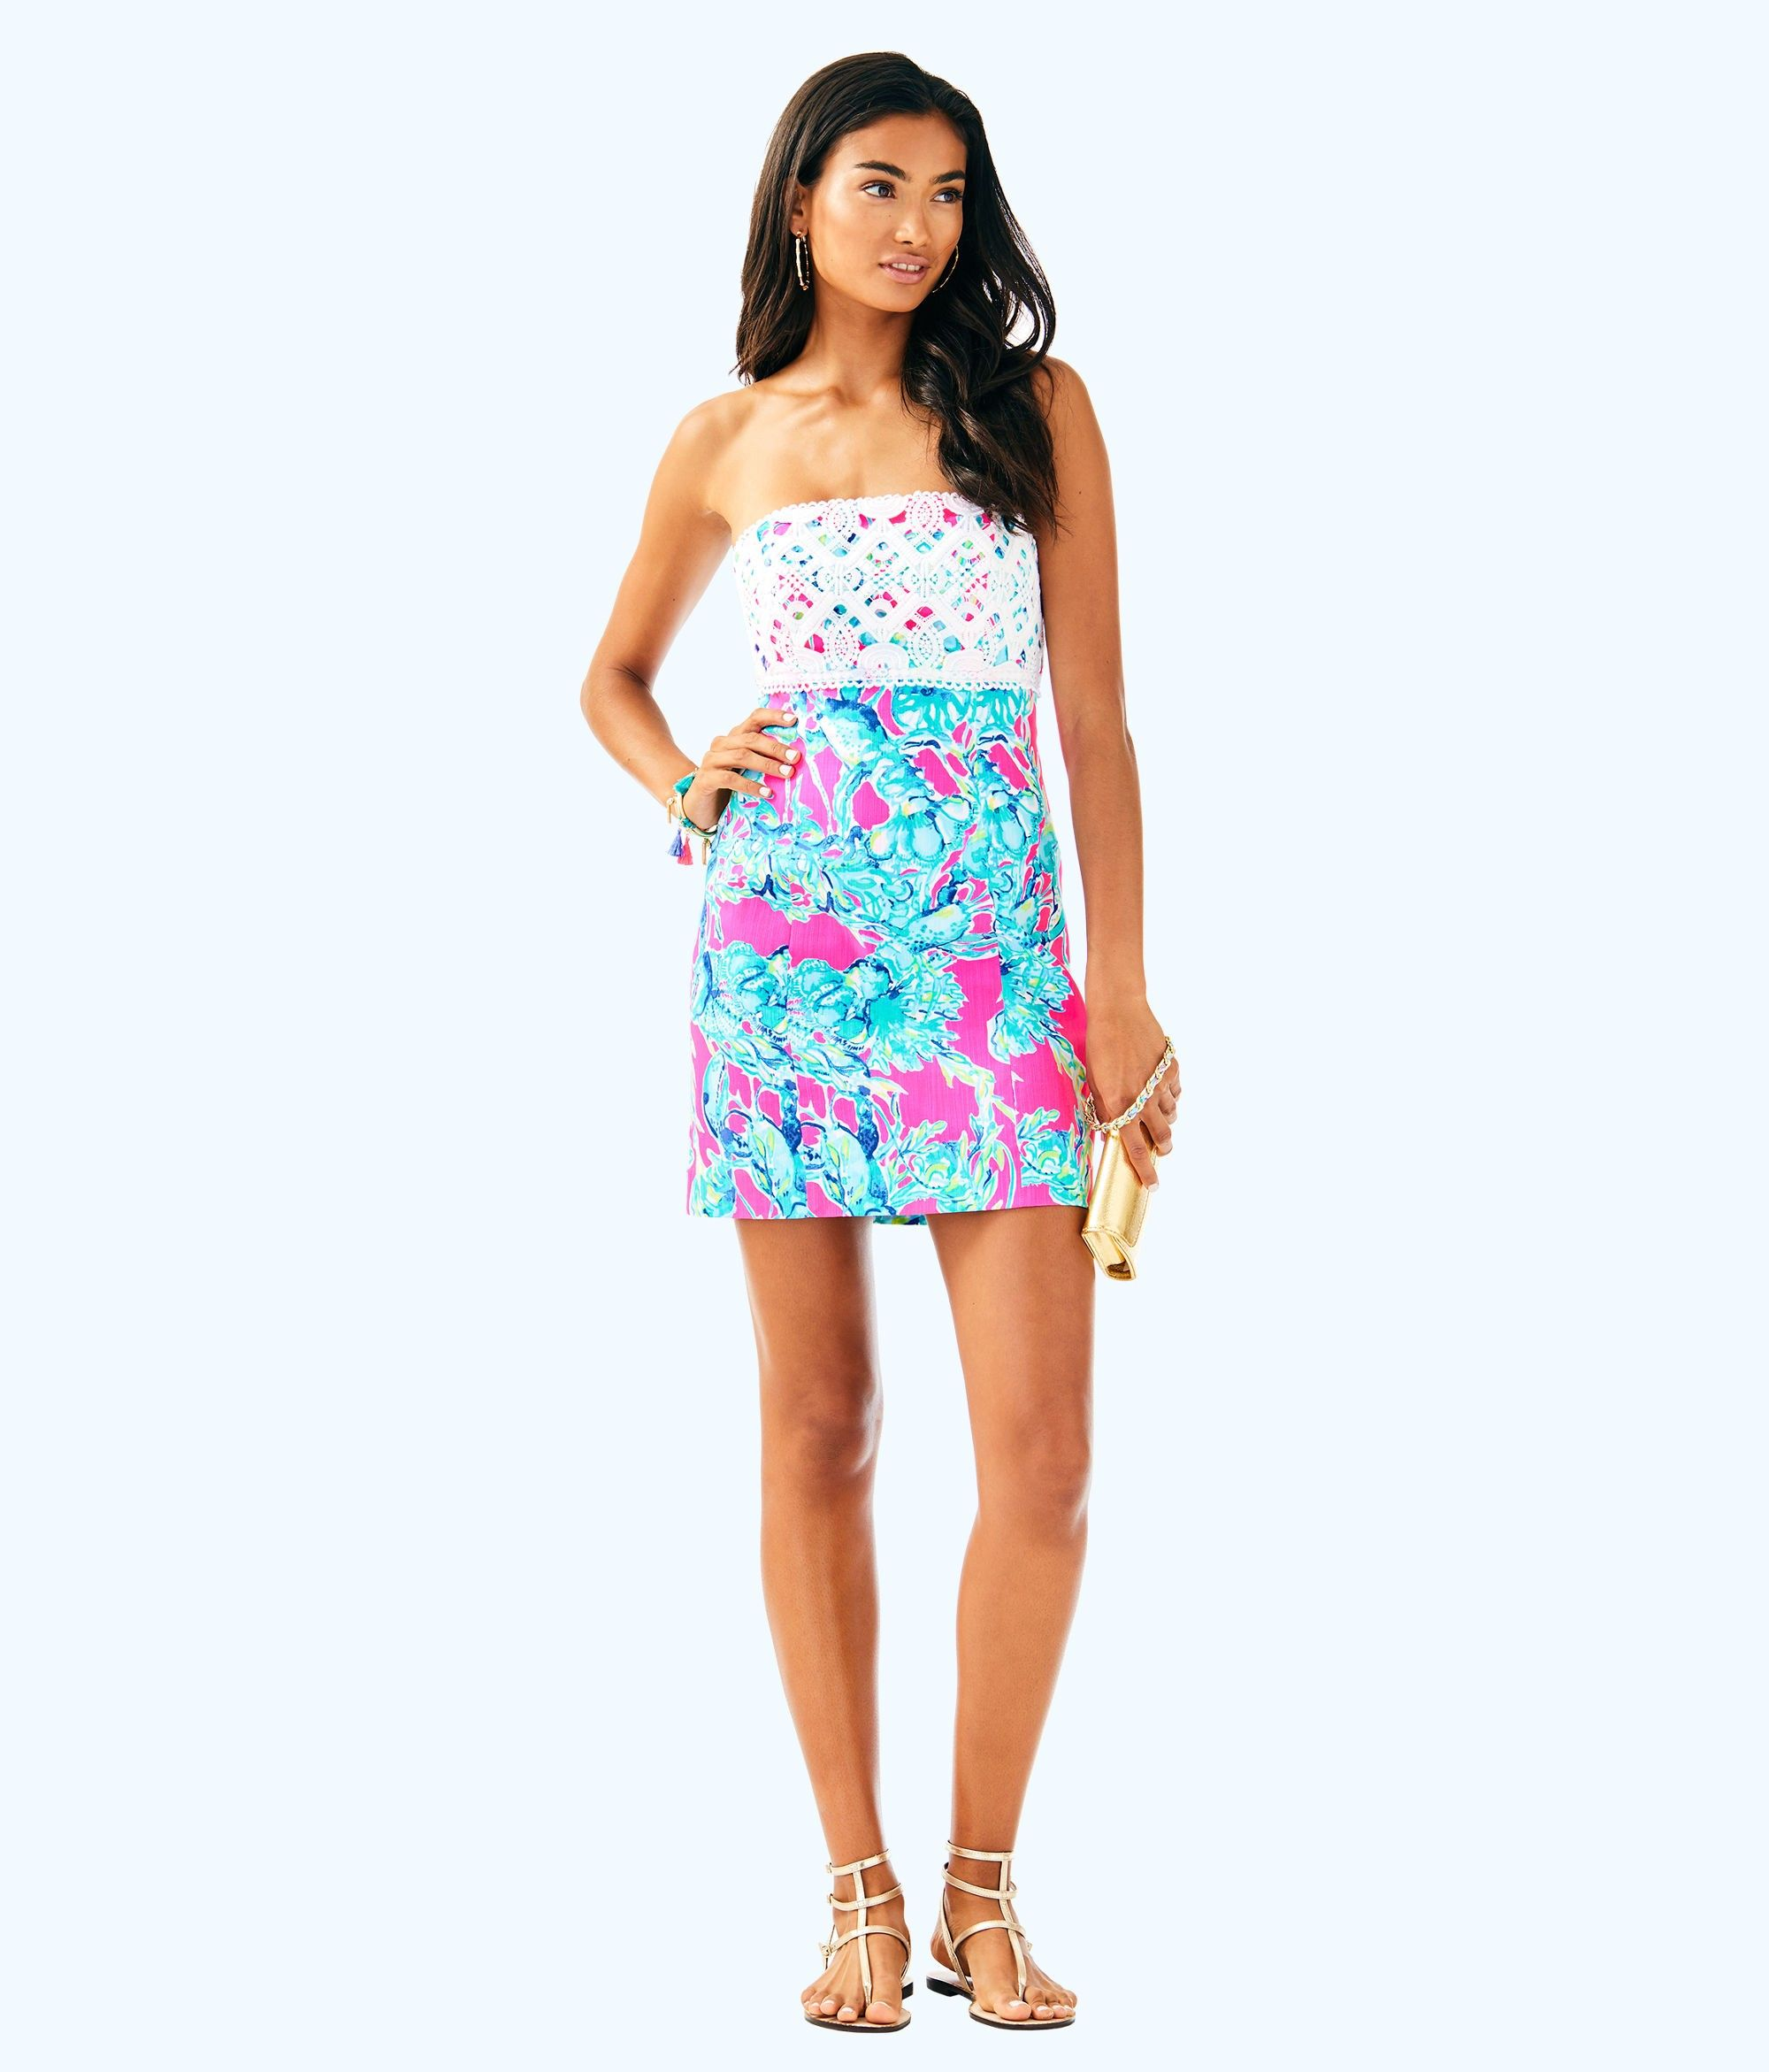 361a8e68384d59 Lilly Pulitzer Brynn Dress - 6 | Products